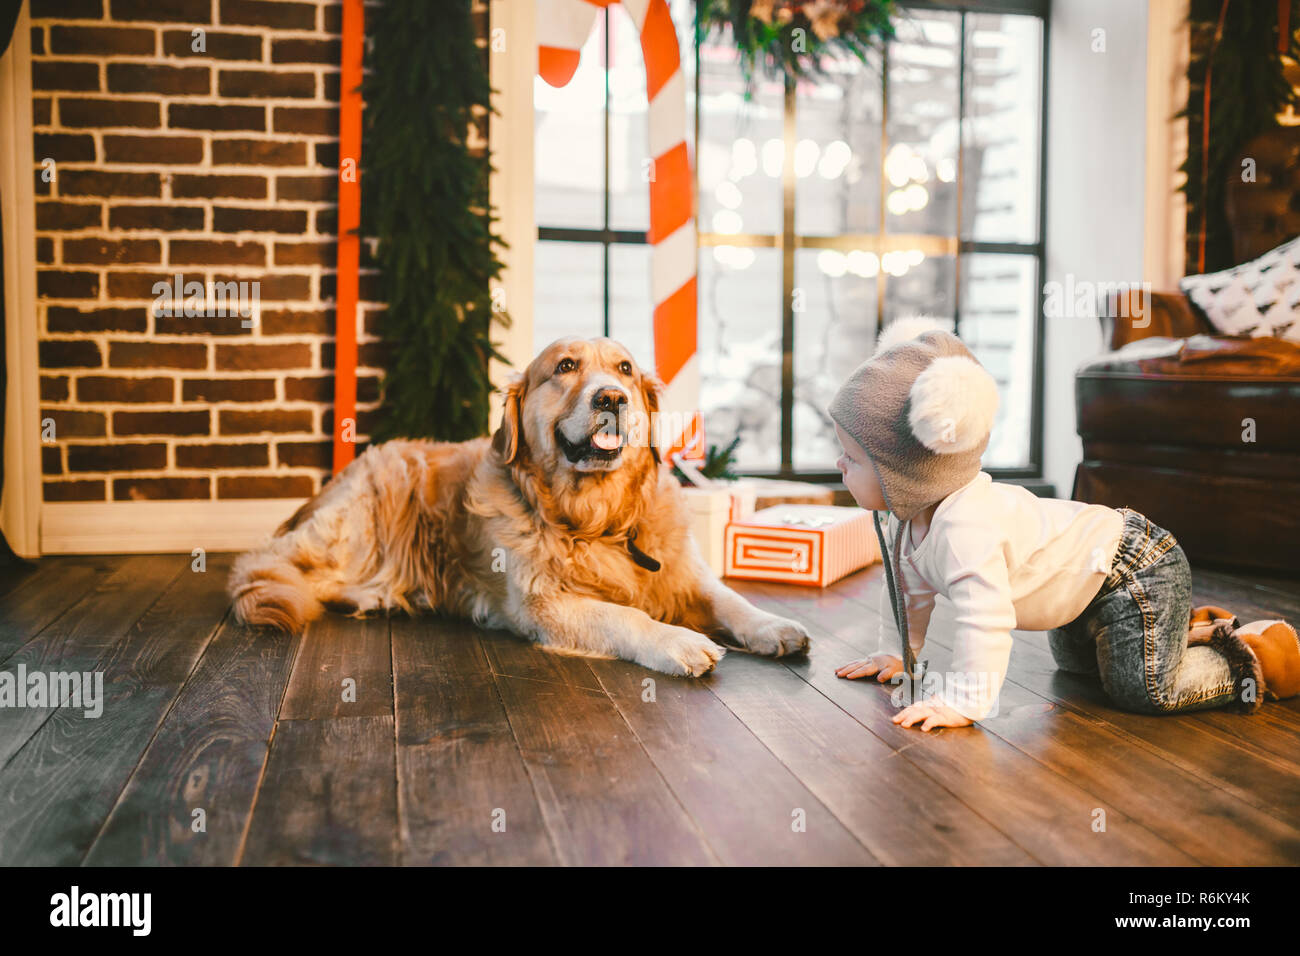 Friendship man child and dog pet. Theme Christmas New Year Winter Holidays. Baby boy crawling learns walk wooden floor decorated interior of house and best friend dog breed Labrador golden retriever - Stock Image